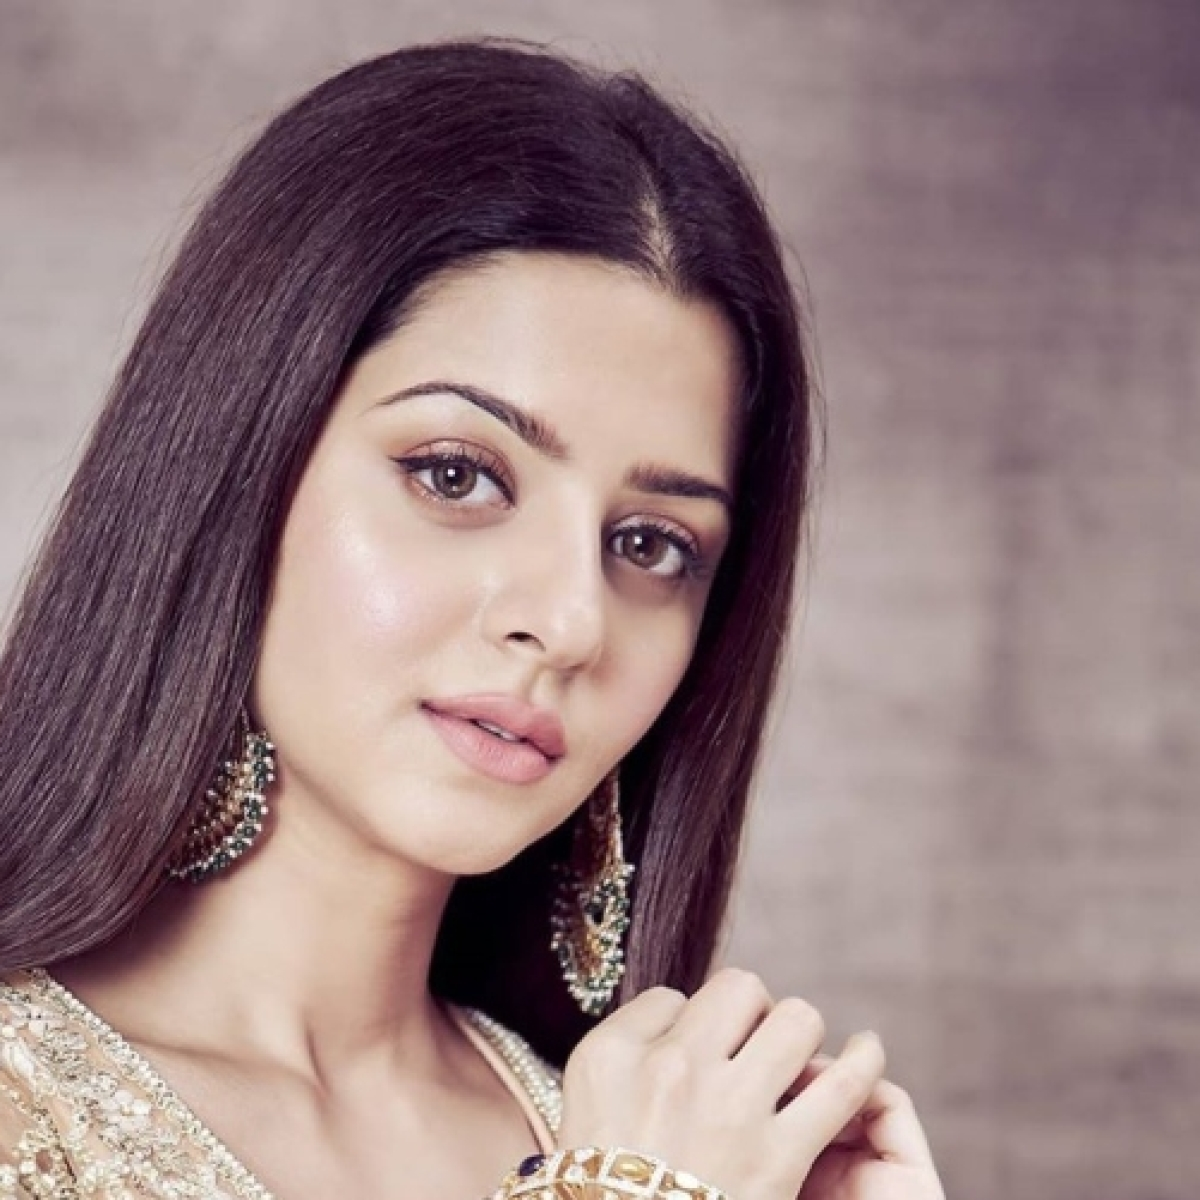 After Bollywood debut with 'The Body', actress Vedhika signs a web series!